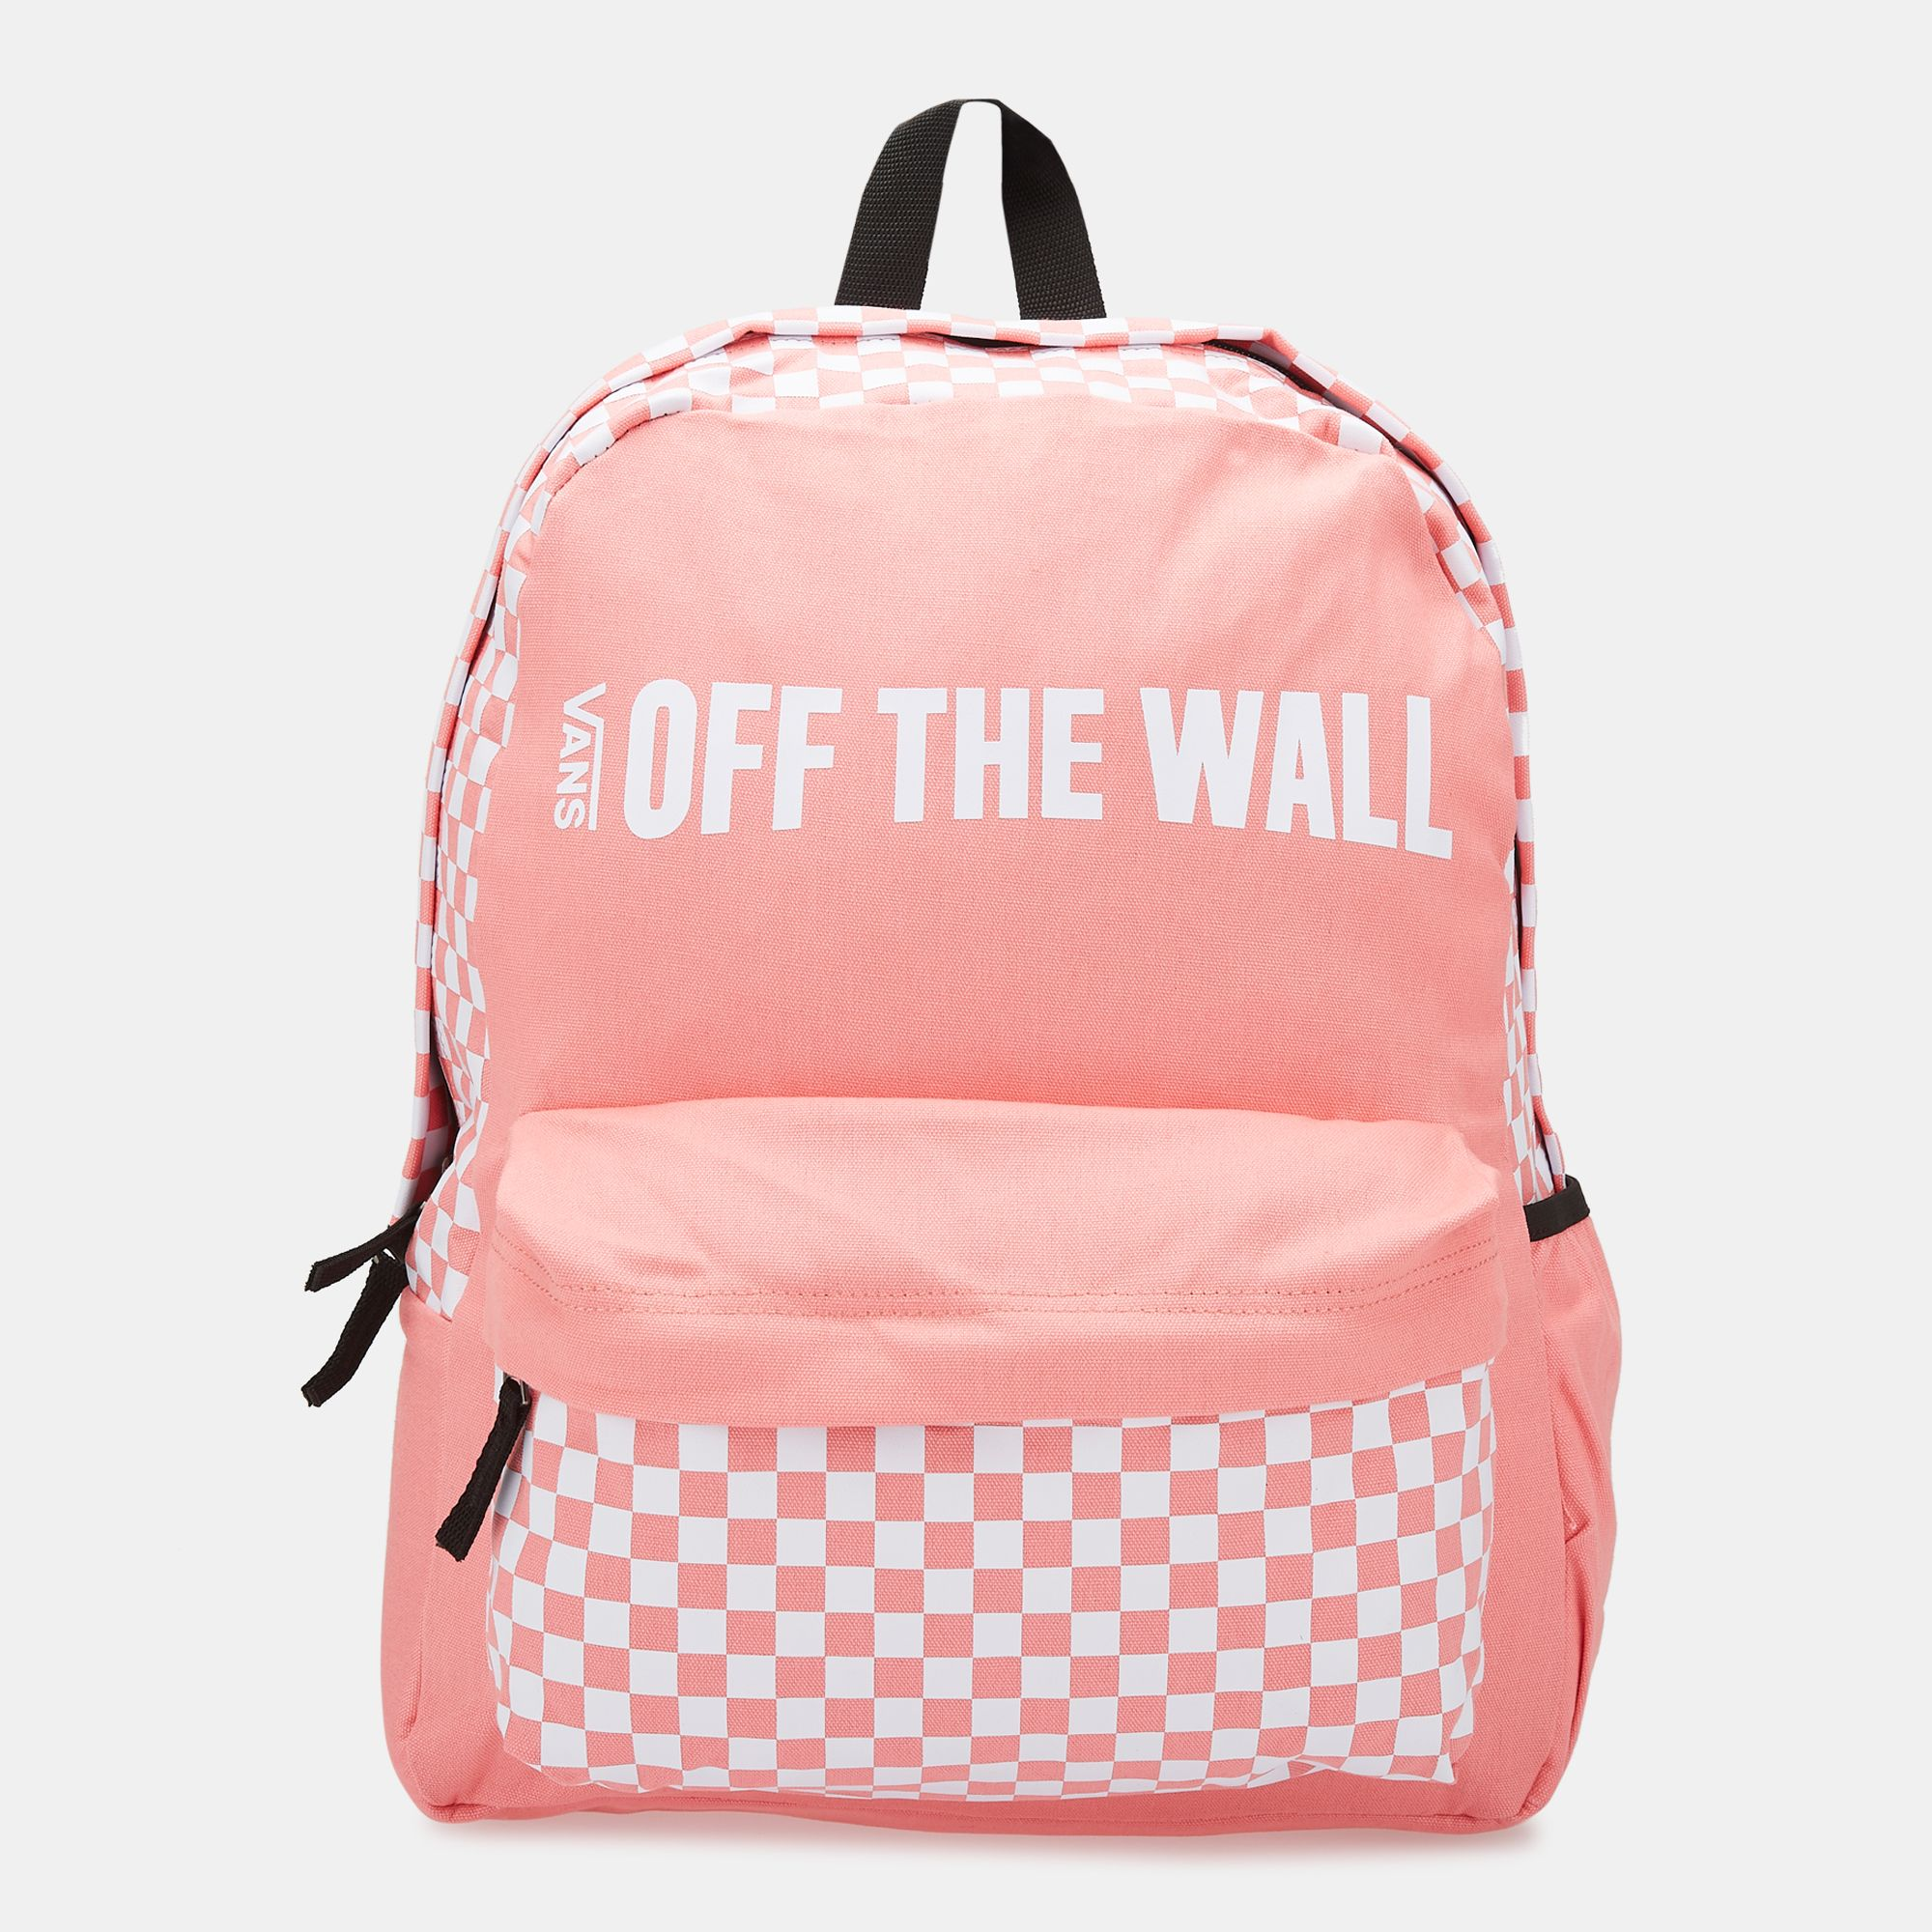 38cb2d9d65 Vans Central Realm Backpack | Backpacks and Rucksacks | Bags and ...